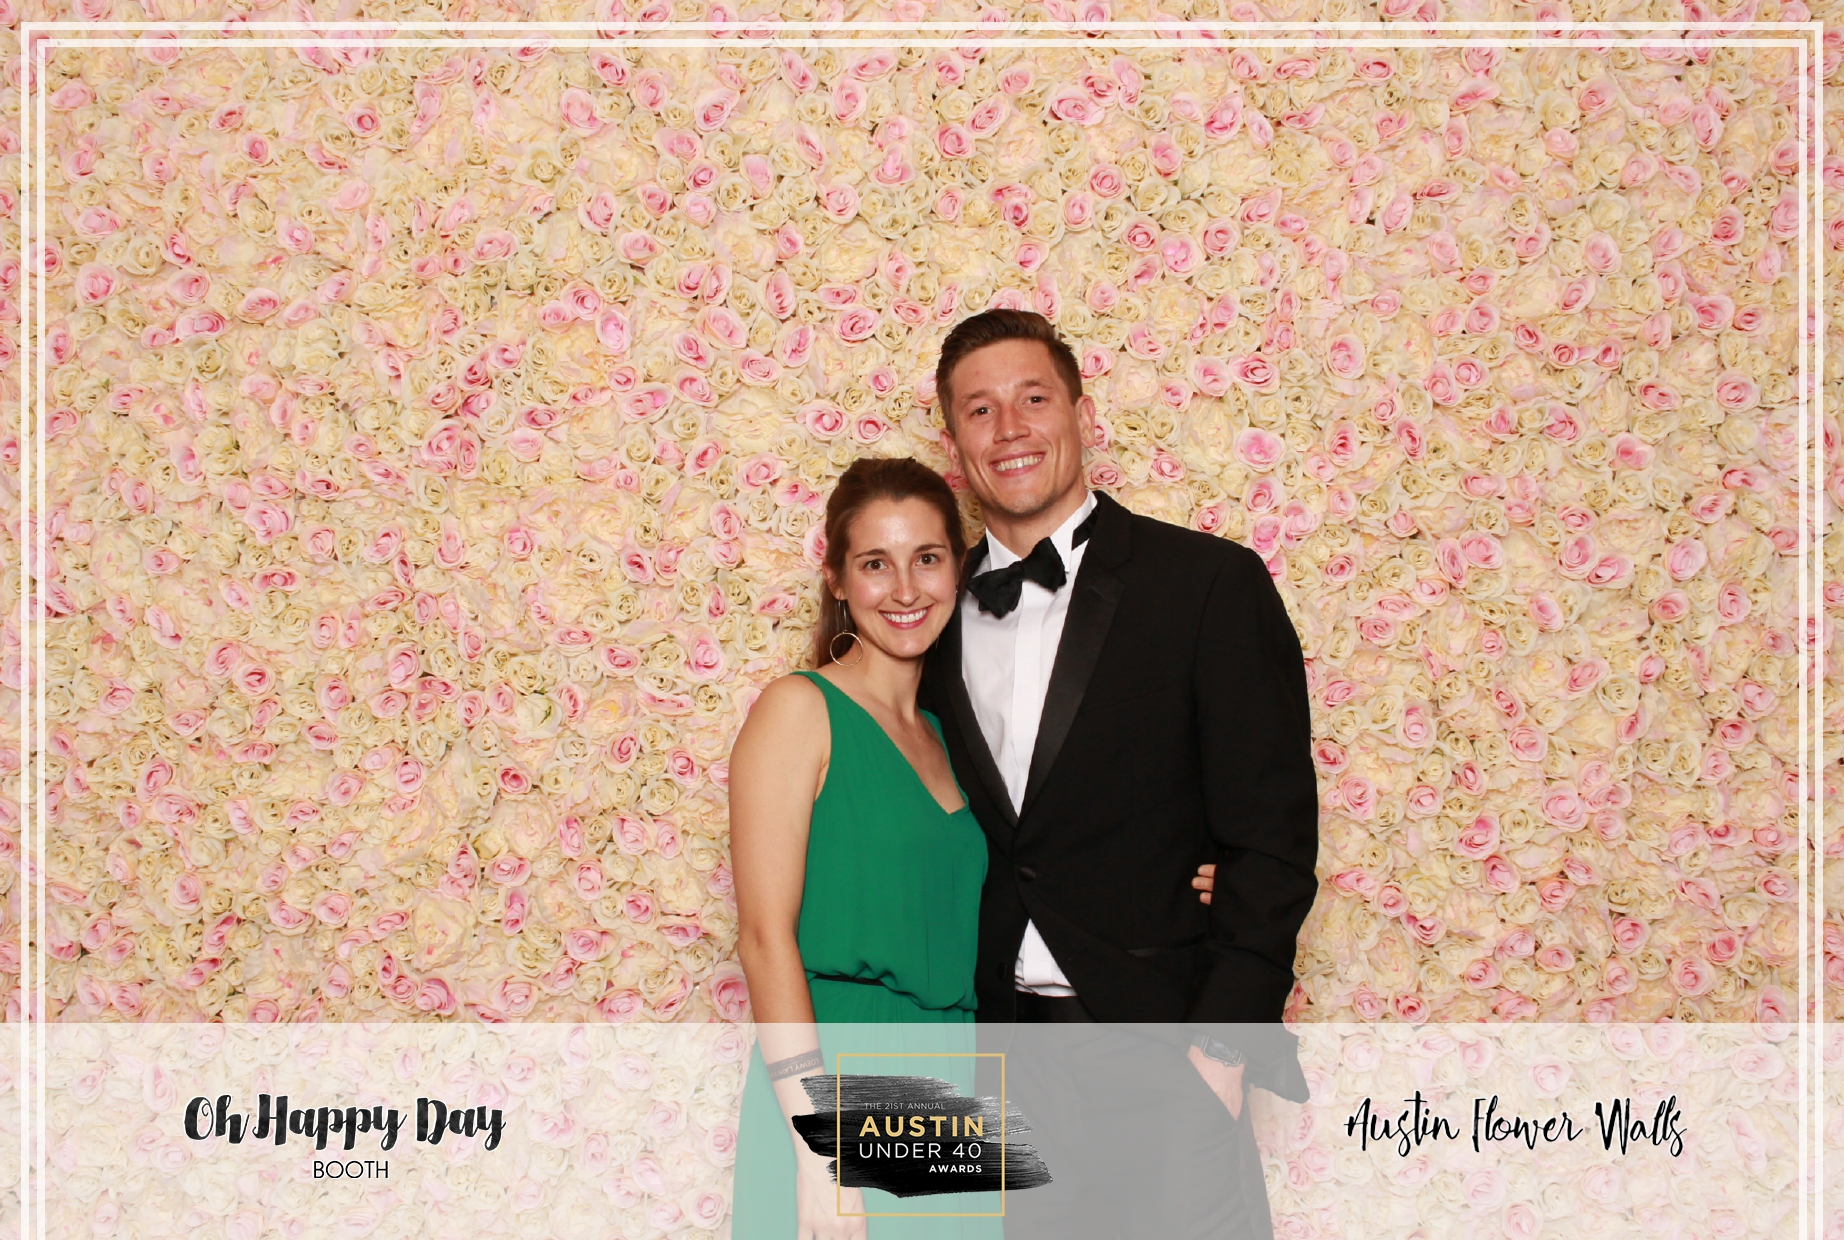 Oh Happy Day Booth - Austin Under 40-208.jpg